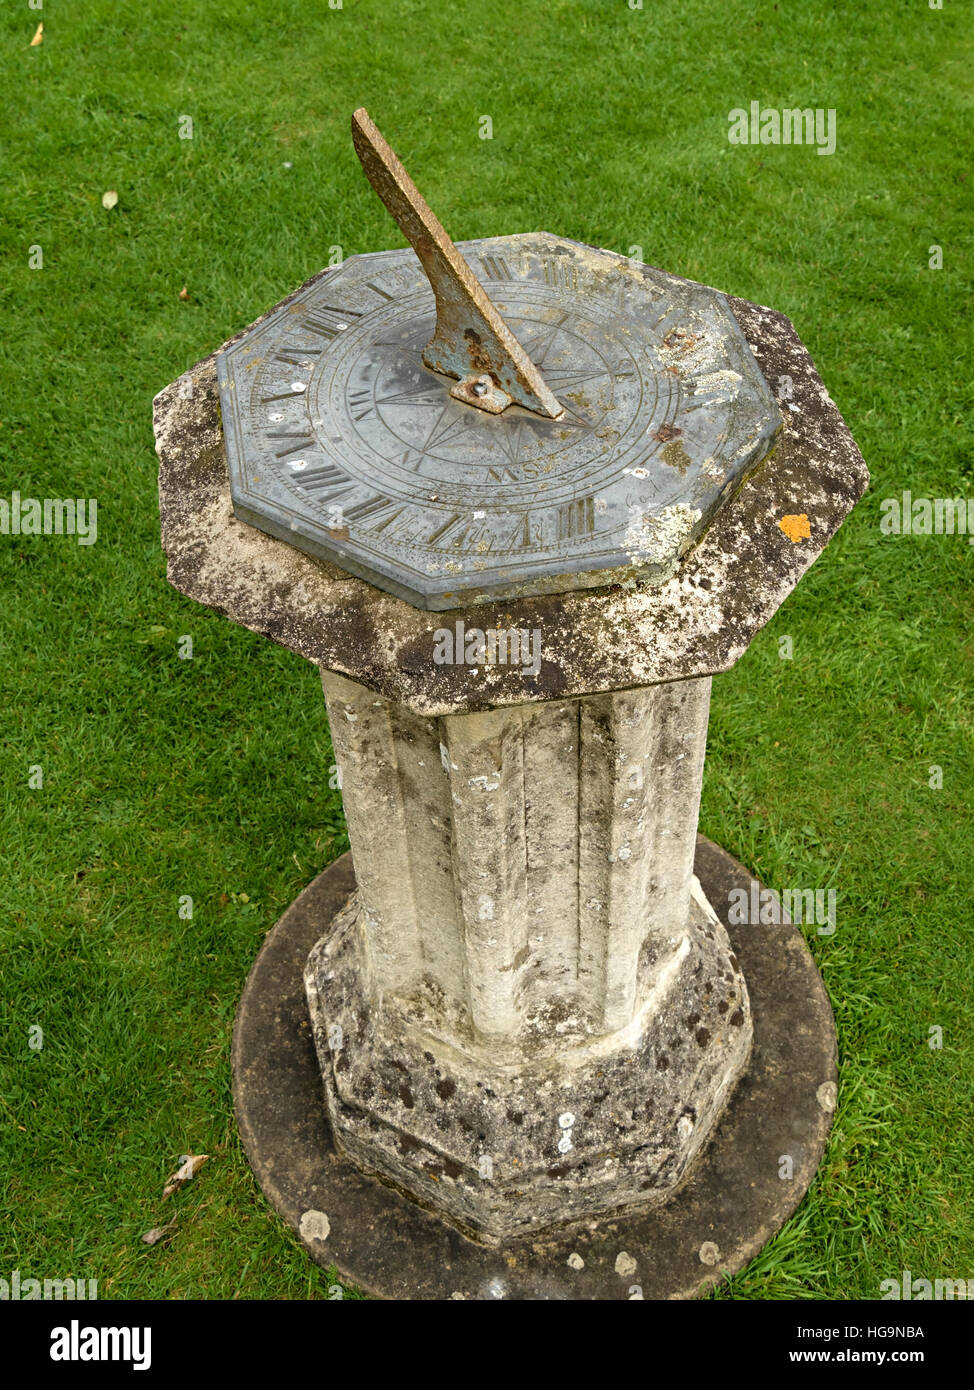 Sundial garden ornament - Old Pedestal Garden Sundial With Engraved Roman Numerals Uk Stock Image